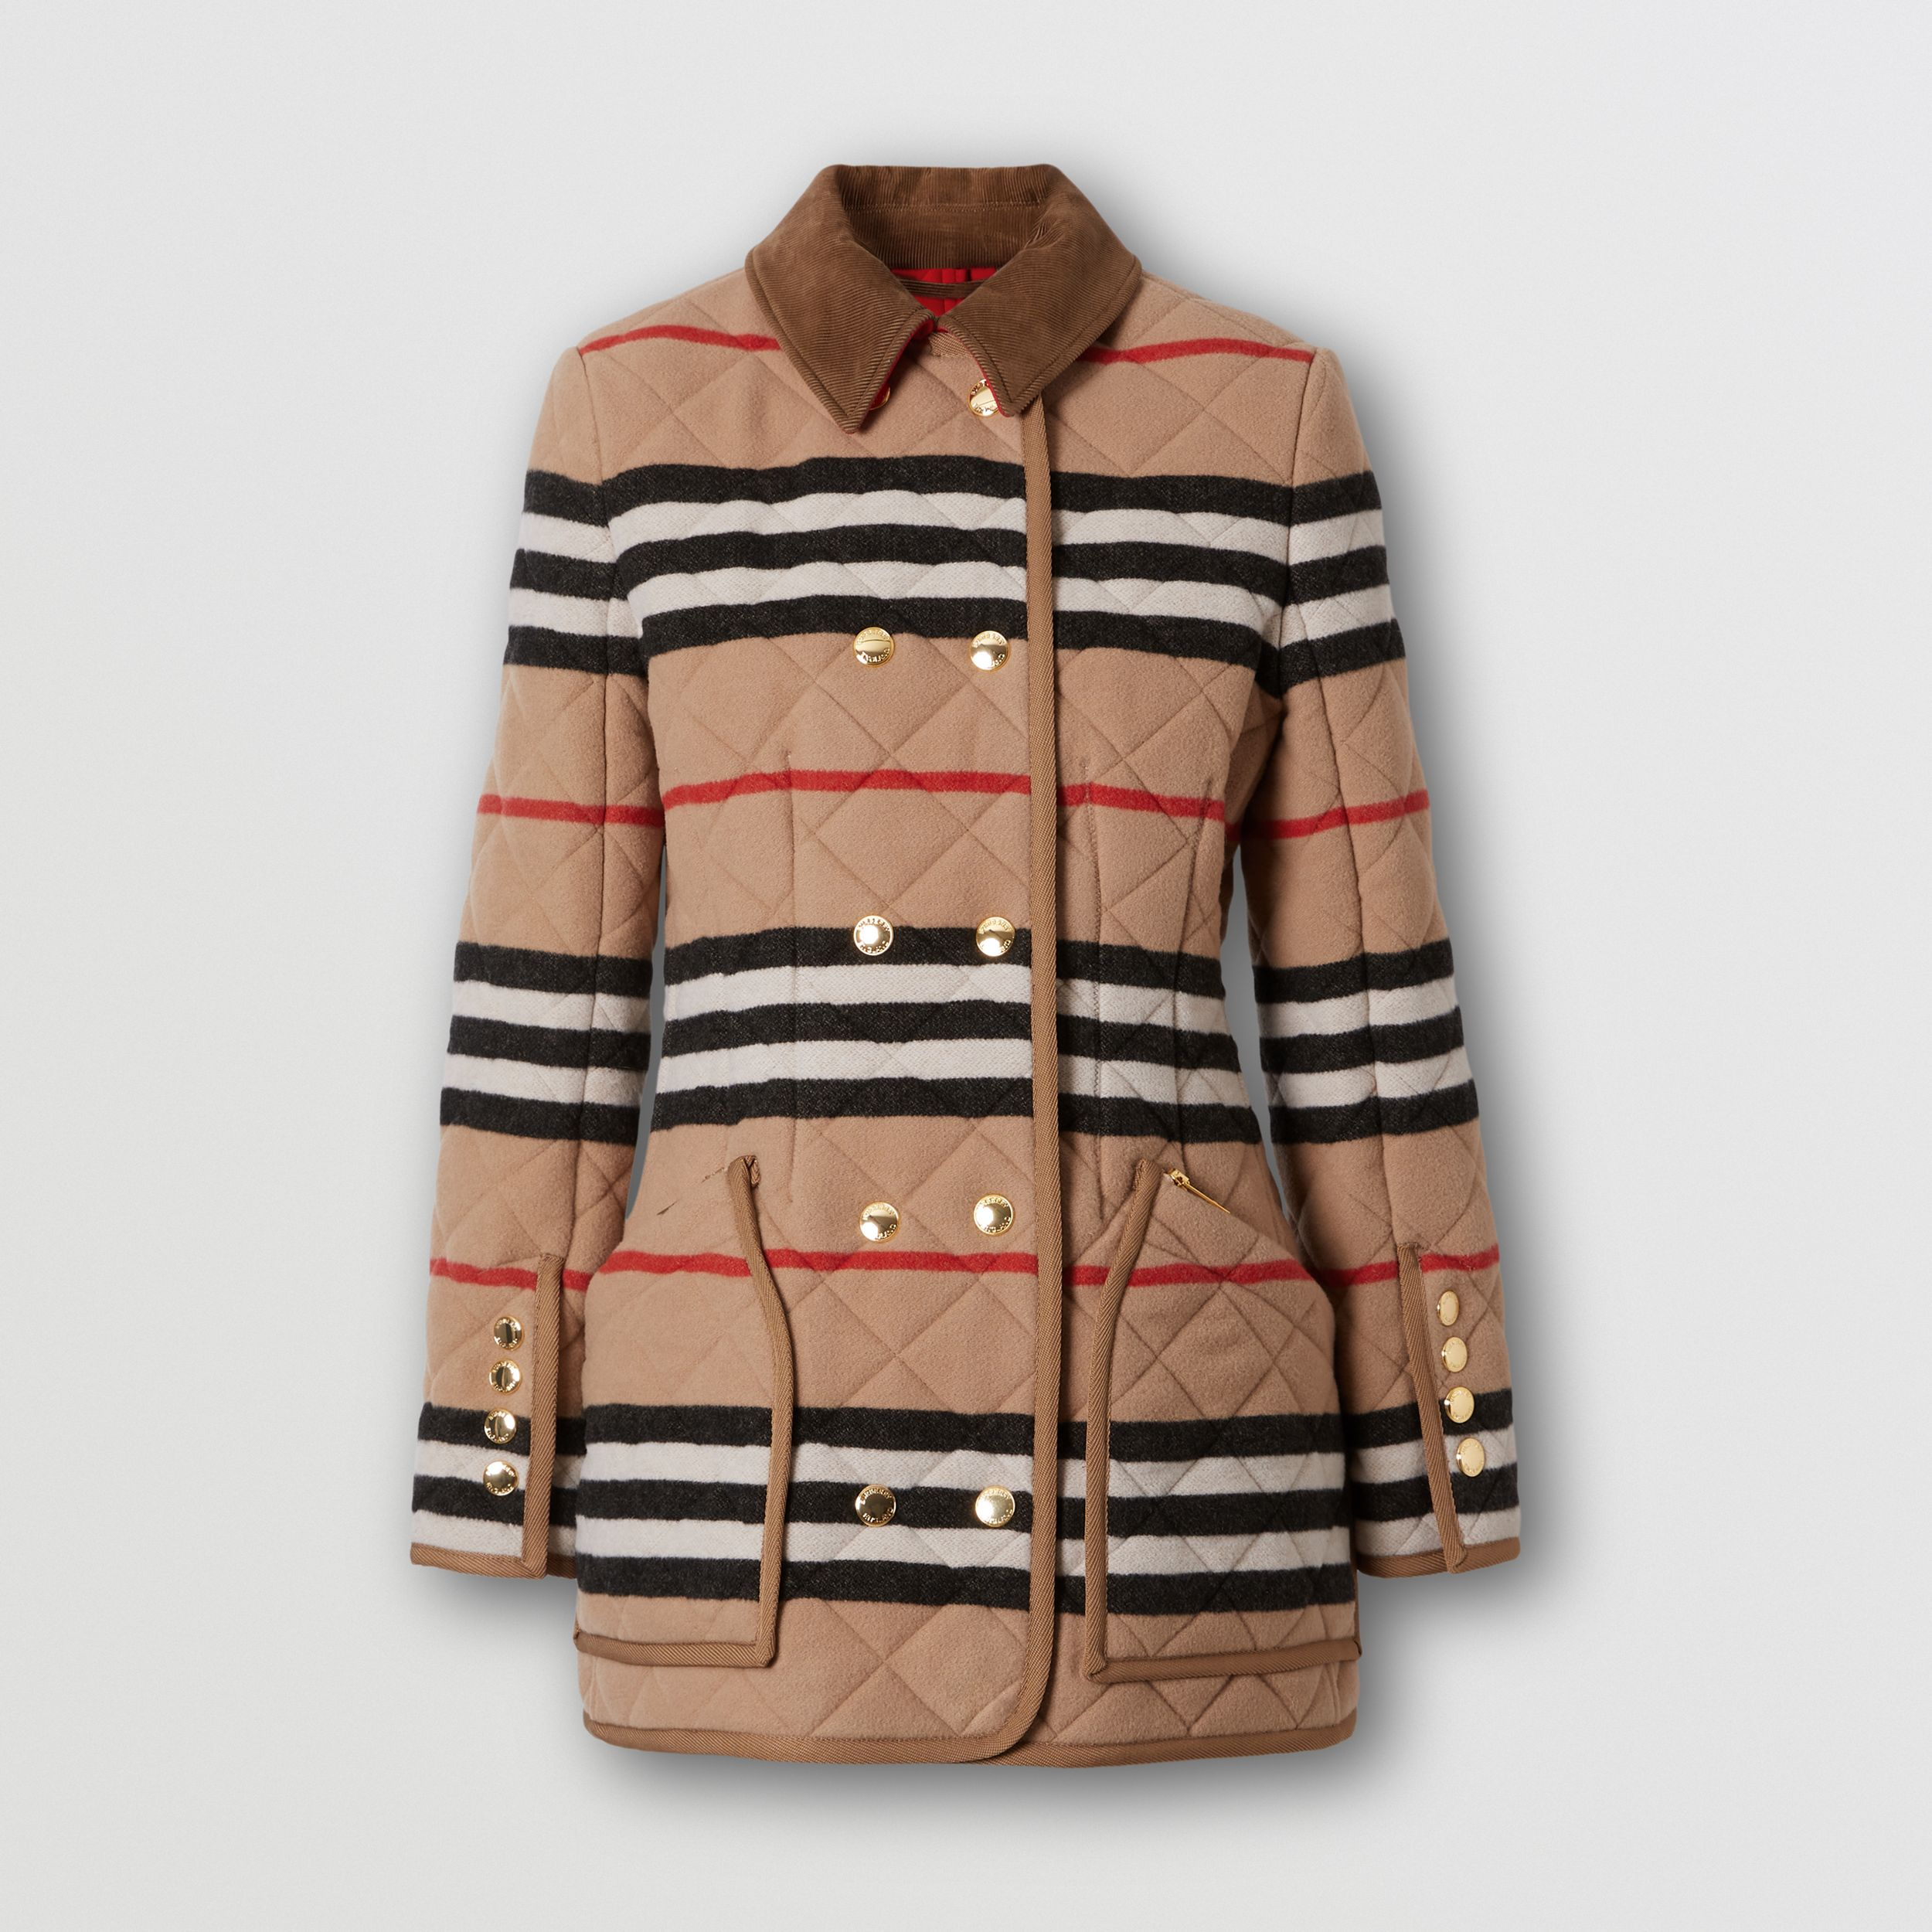 Icon Stripe Diamond Quilted Wool Riding Jacket in Light Camel - Women | Burberry United Kingdom - 4